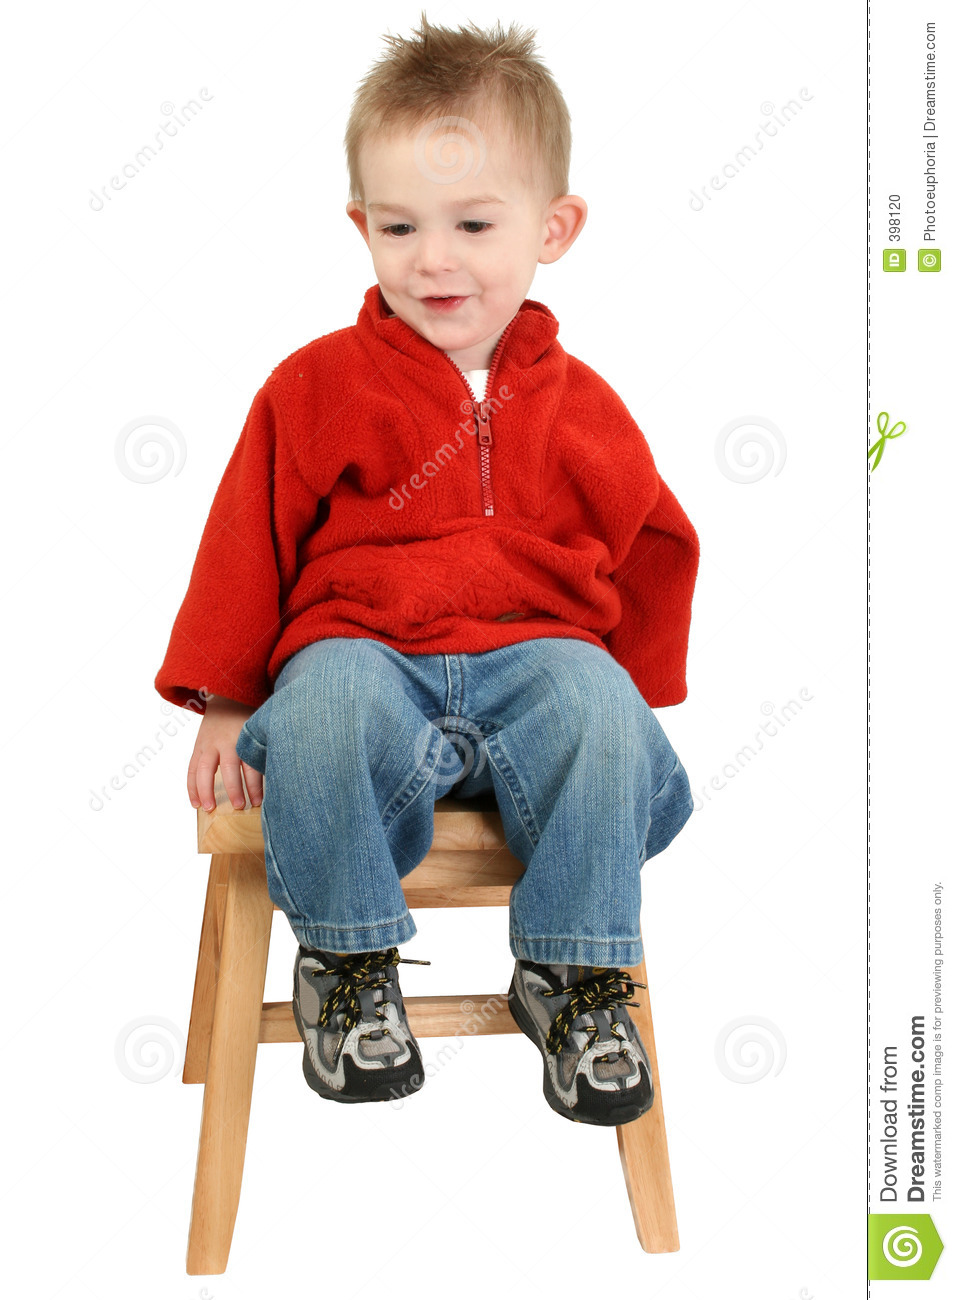 Adorable One Year Old Boy Sitting On Step Stool Stock